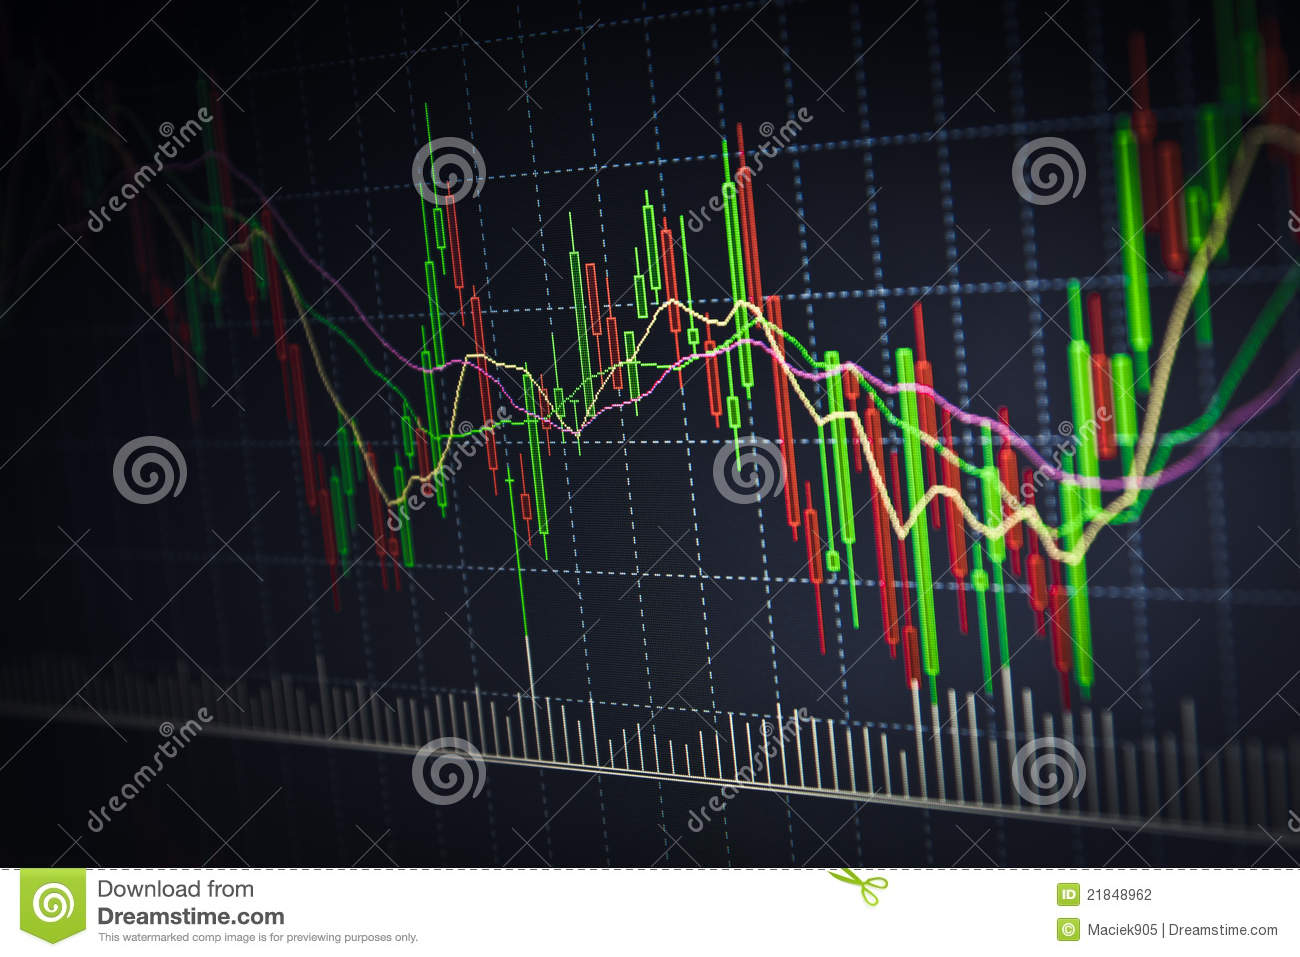 Real Time Stock Quote Stock Quotes At Real Time At The Stock Exchange Stock Photography